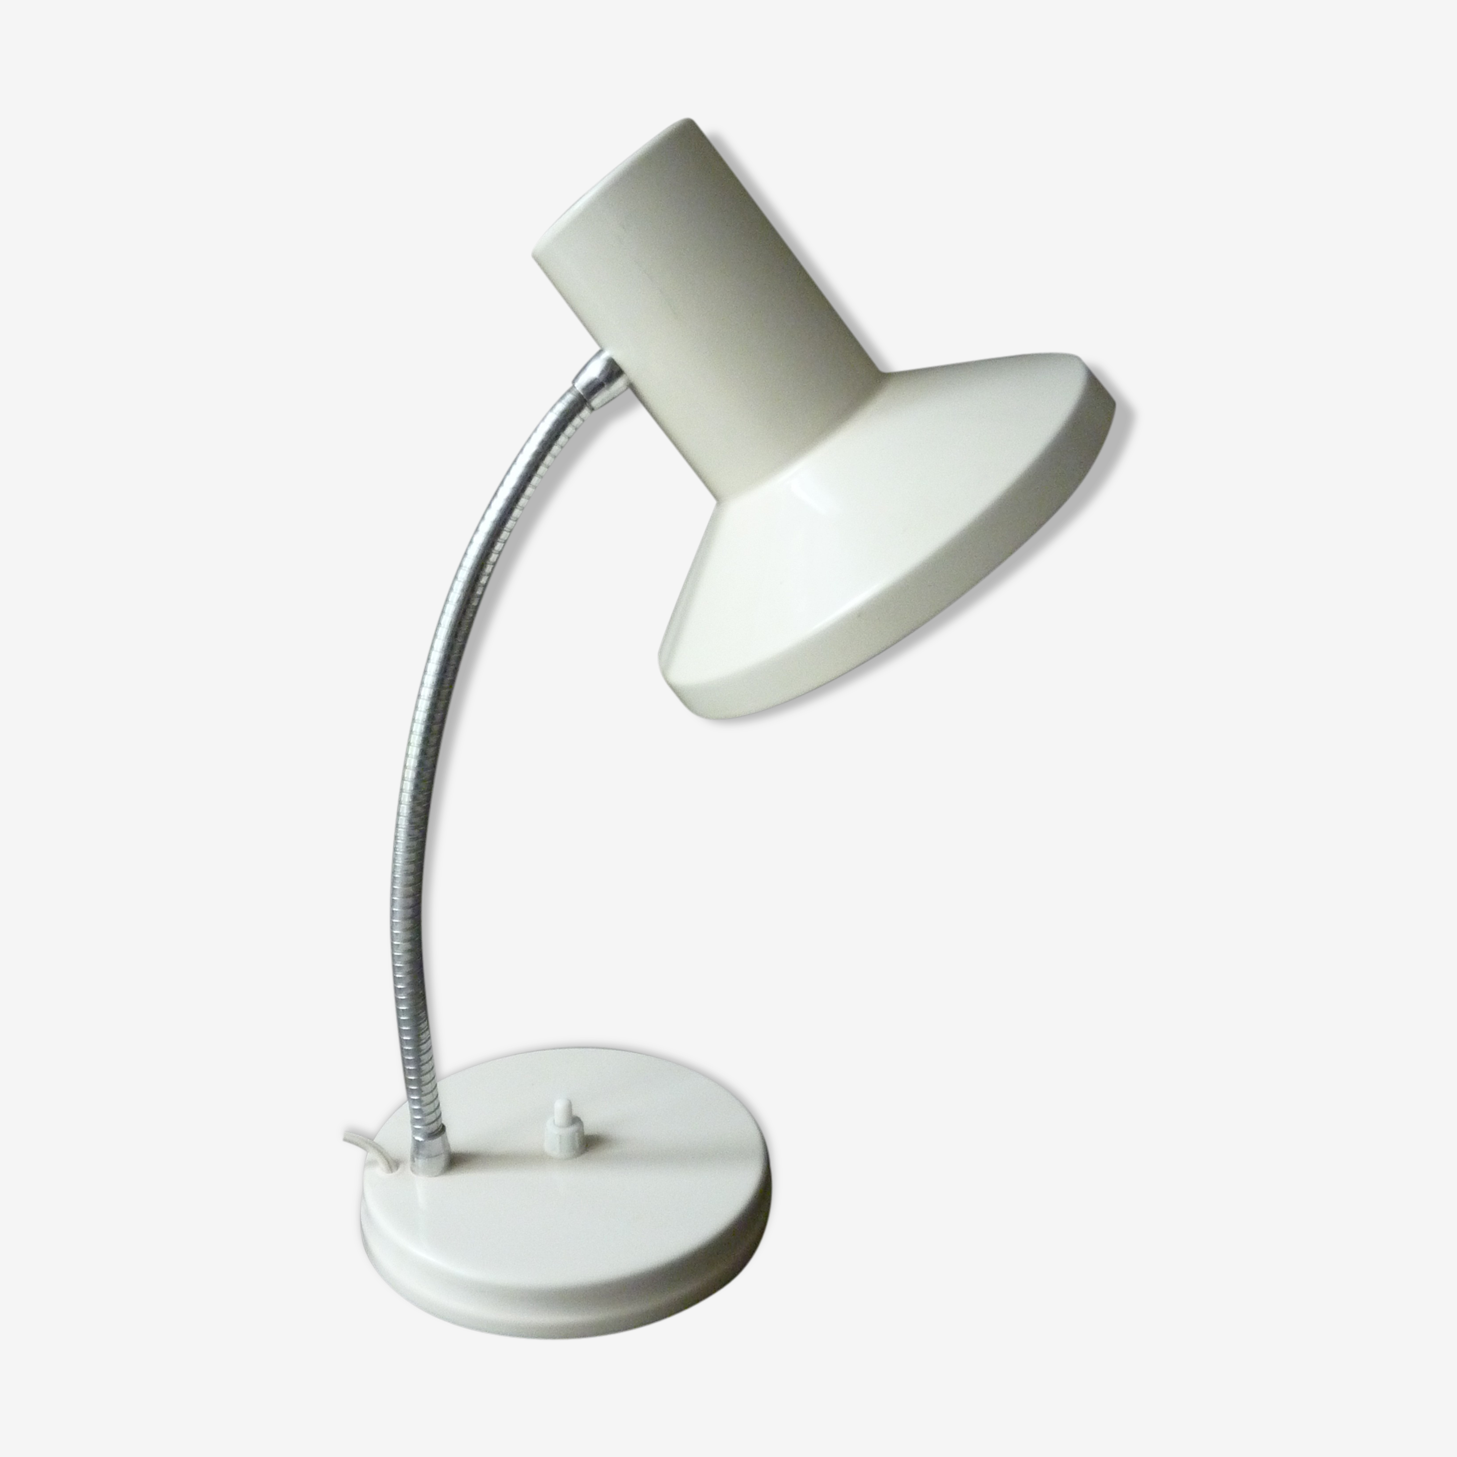 Lamp in white metal with flexible arm of the 50s